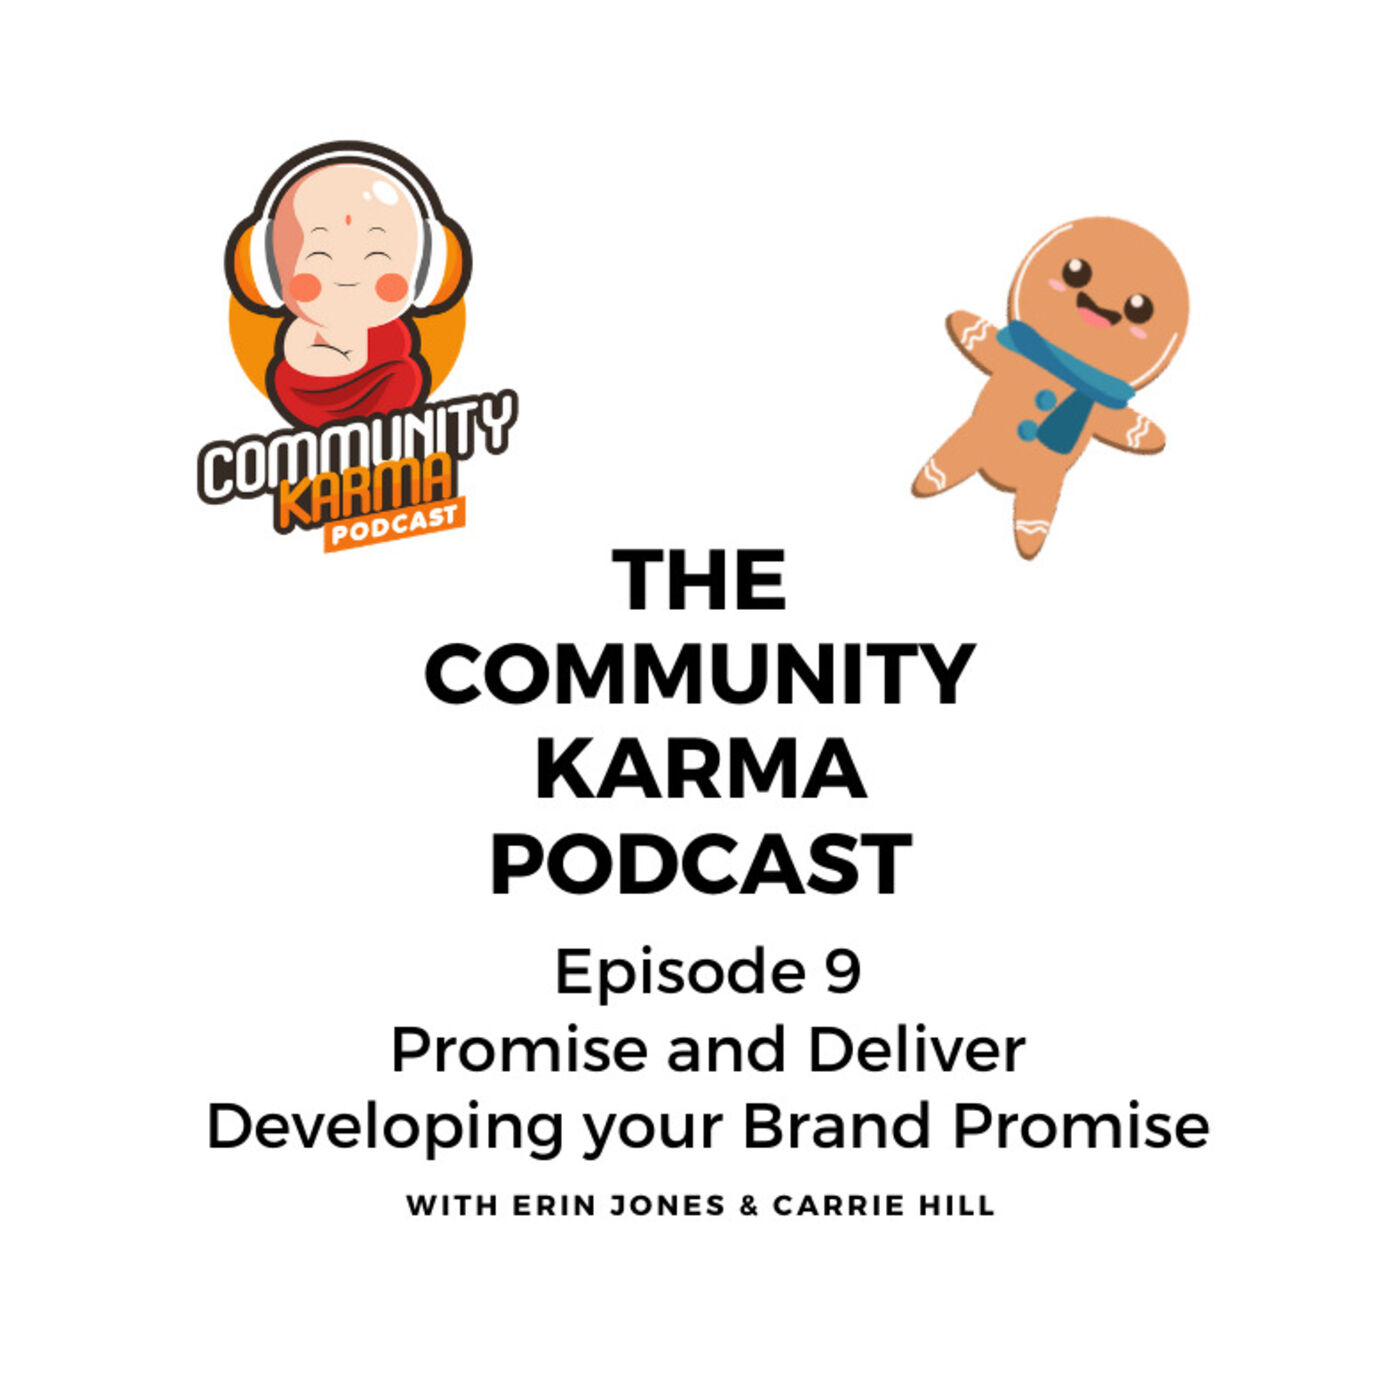 Episode 9: Promise and Deliver - Developing your Brand Promise